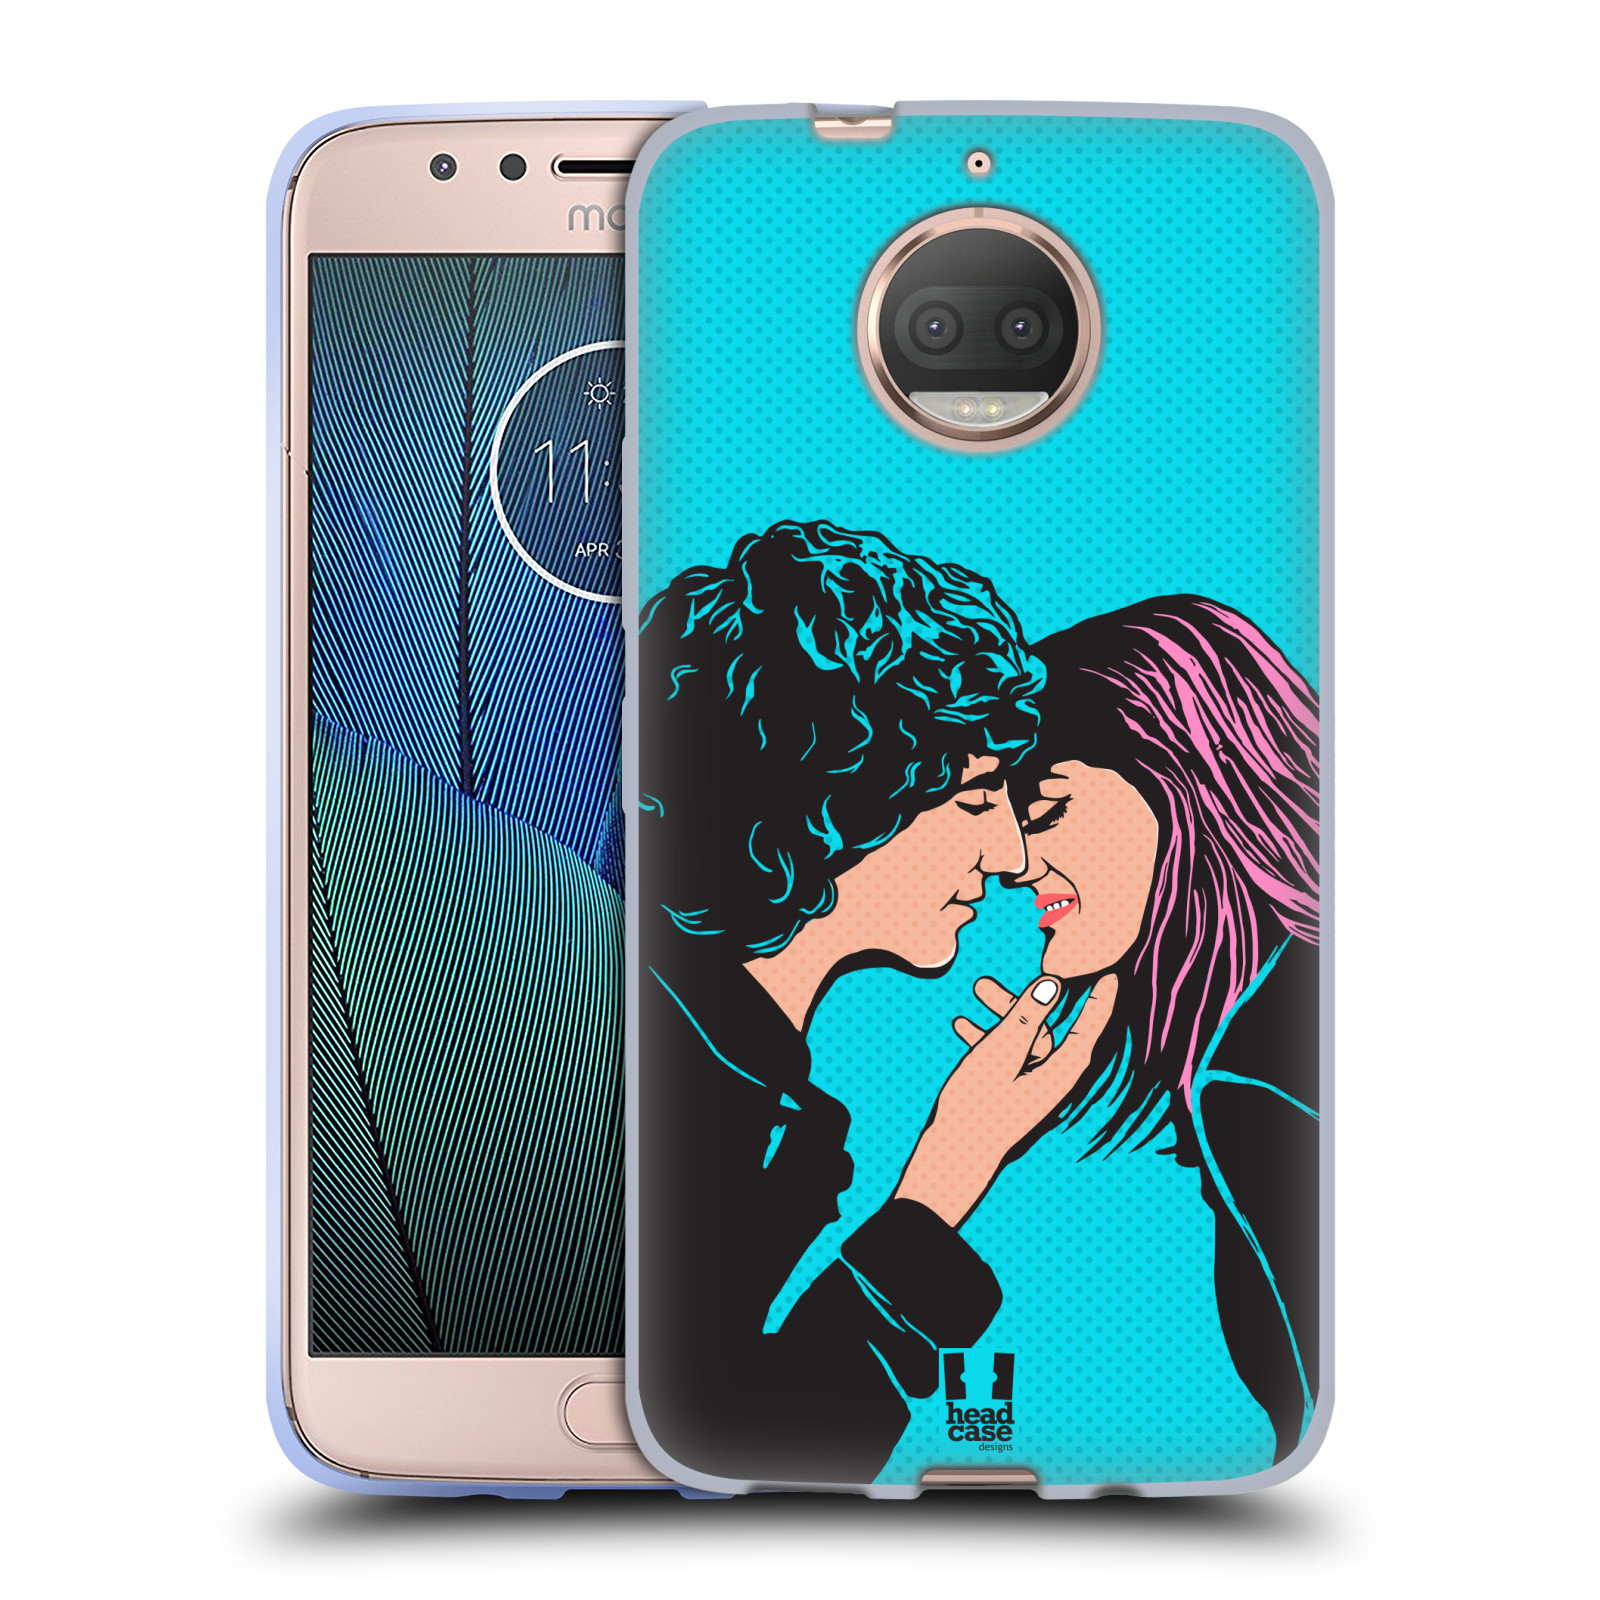 HEAD-CASE-DESIGNS-POP-ART-MOOD-SOFT-GEL-CASE-FOR-MOTOROLA-MOTO-G5S-PLUS